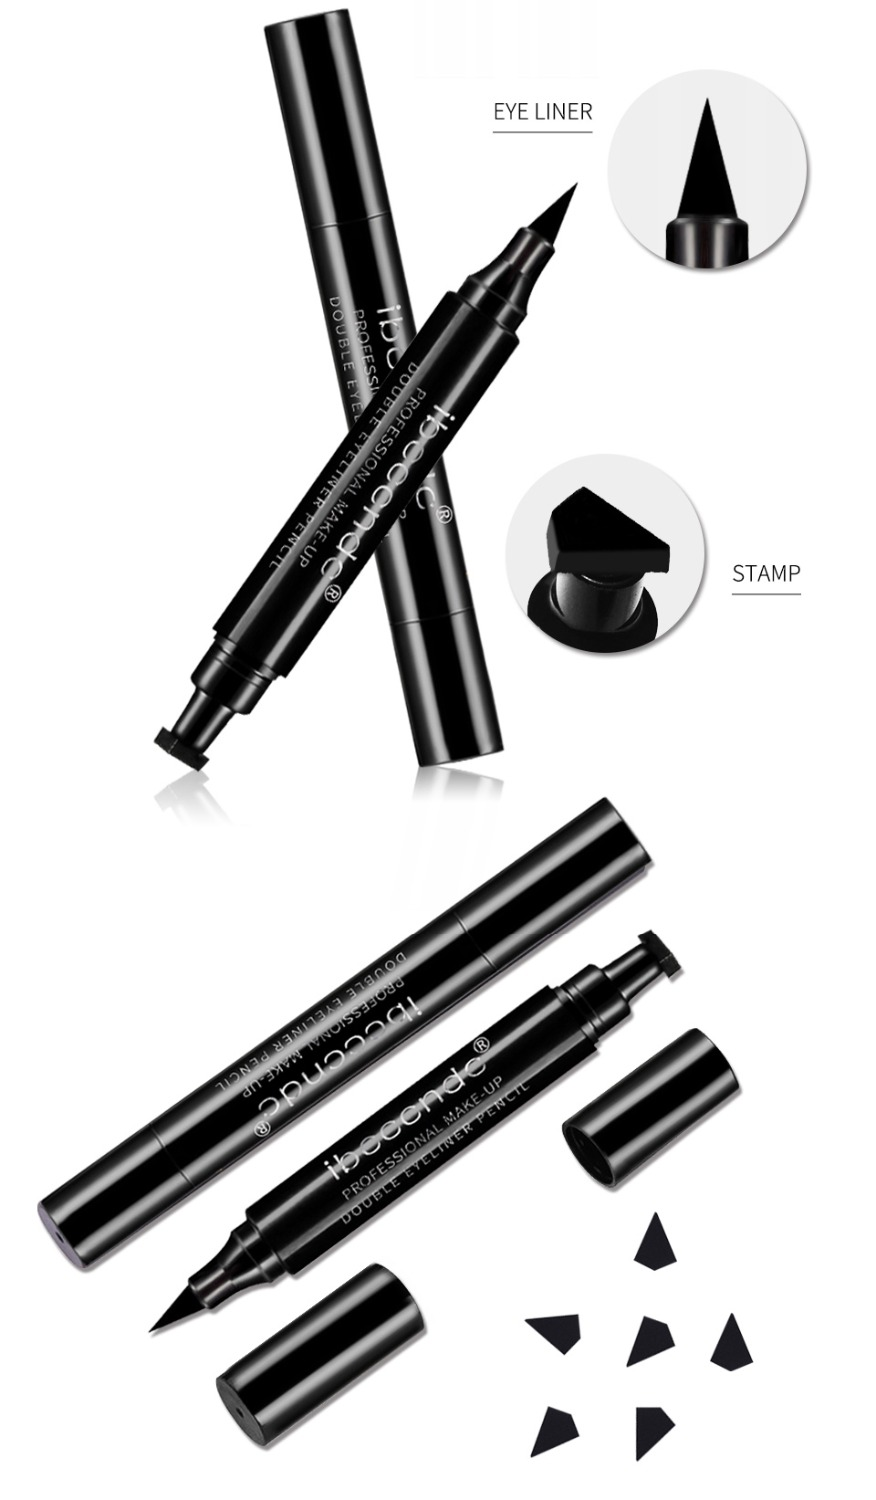 IBCCCNDC Brand Makeup Black Eye Liner Liquid Pencil Quick Dry Waterproof Black Double ended Makeup Stamps Wing Eyeliner Pencil